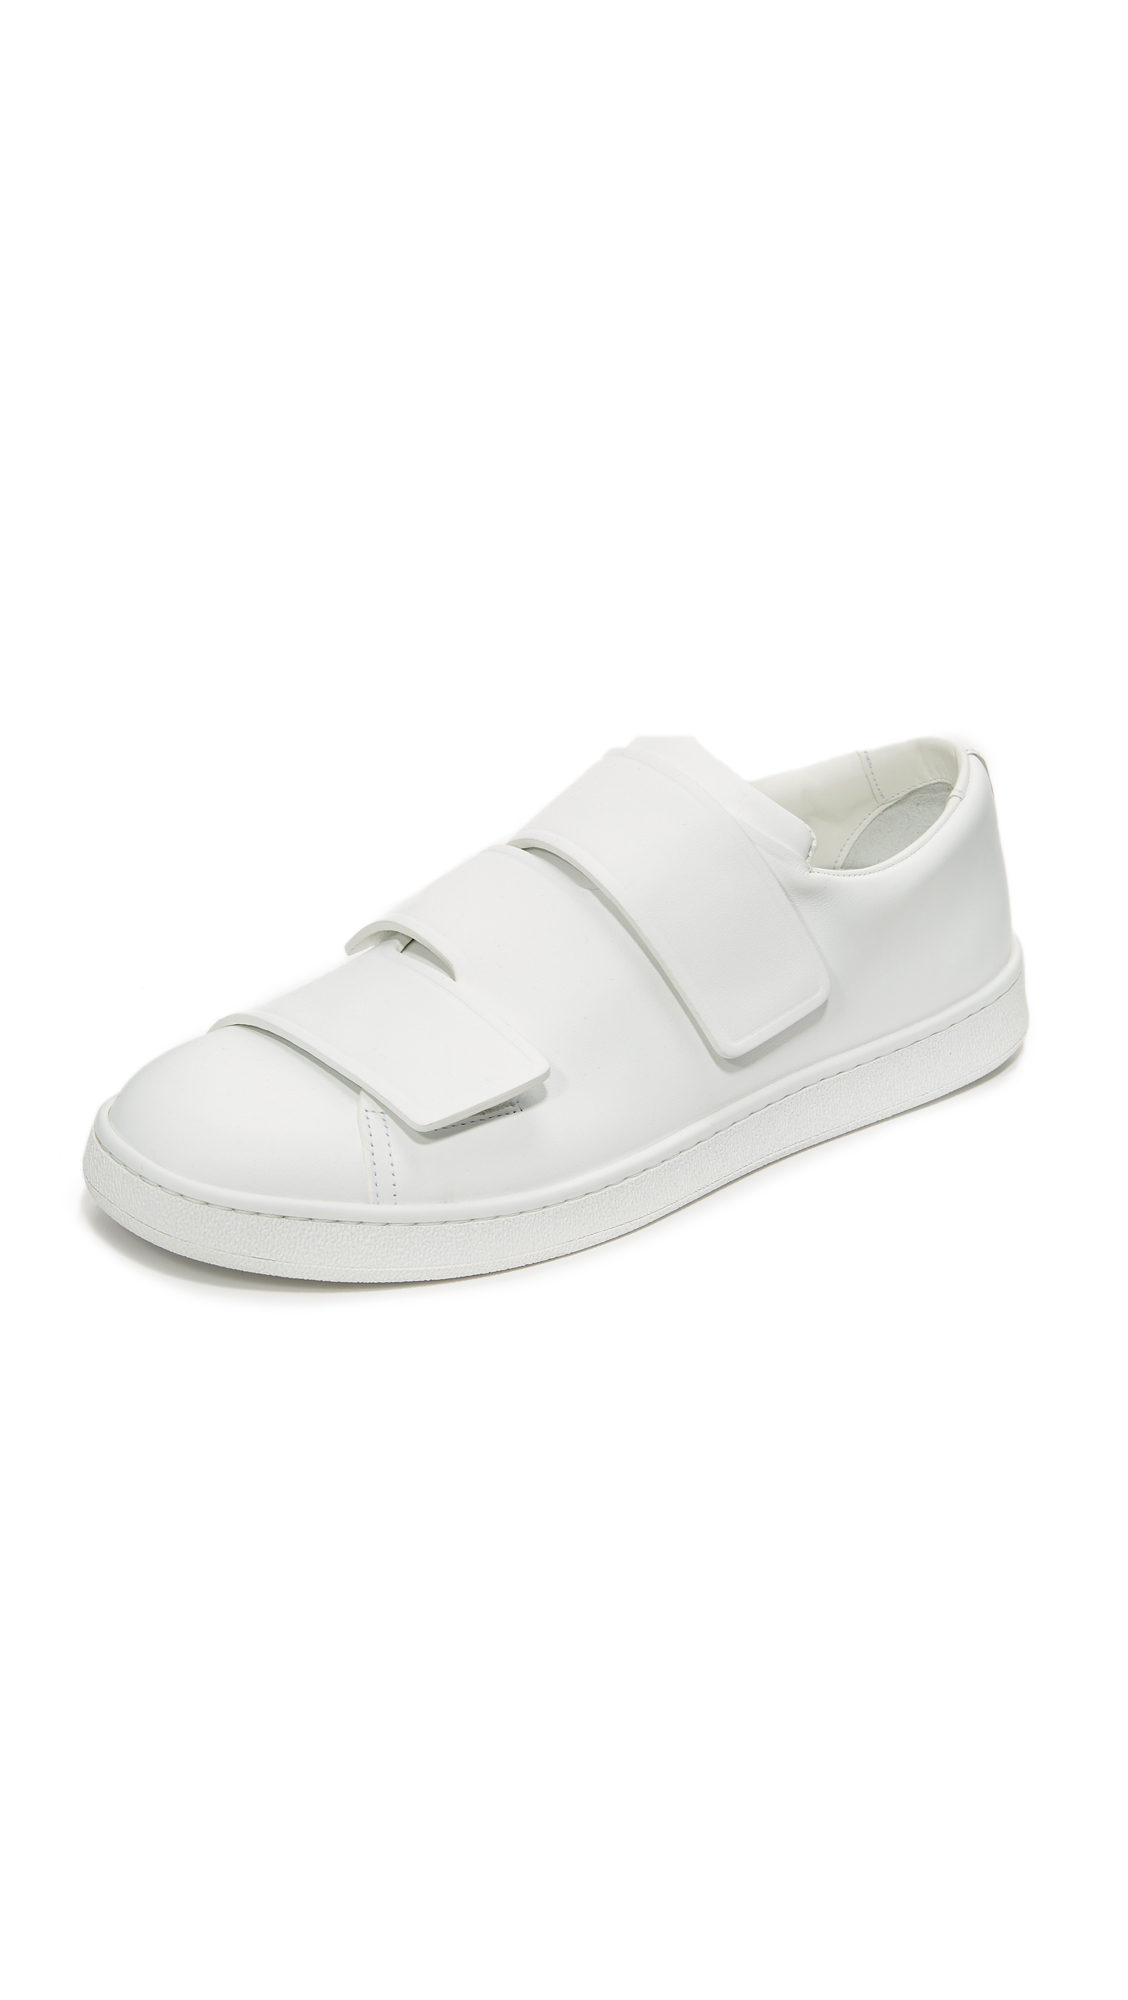 Acne Studios Triple Sneakers - White at Shopbop